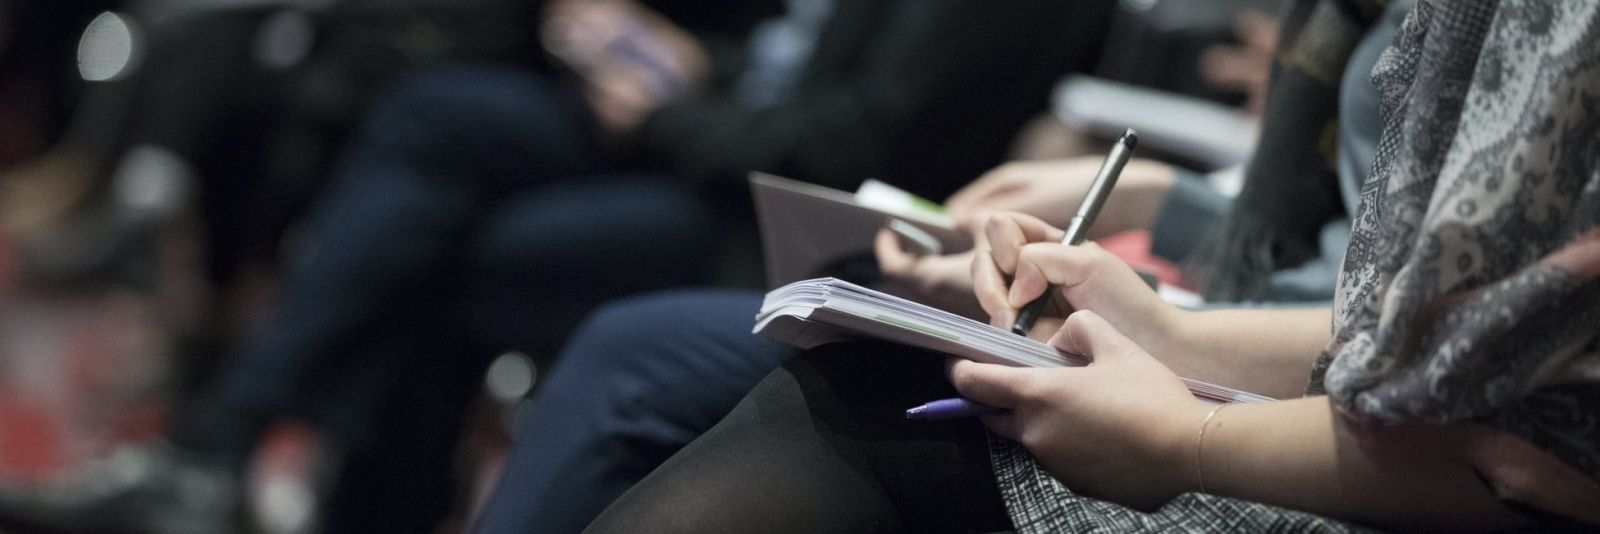 A woman holds a pen and writes notes during a conference